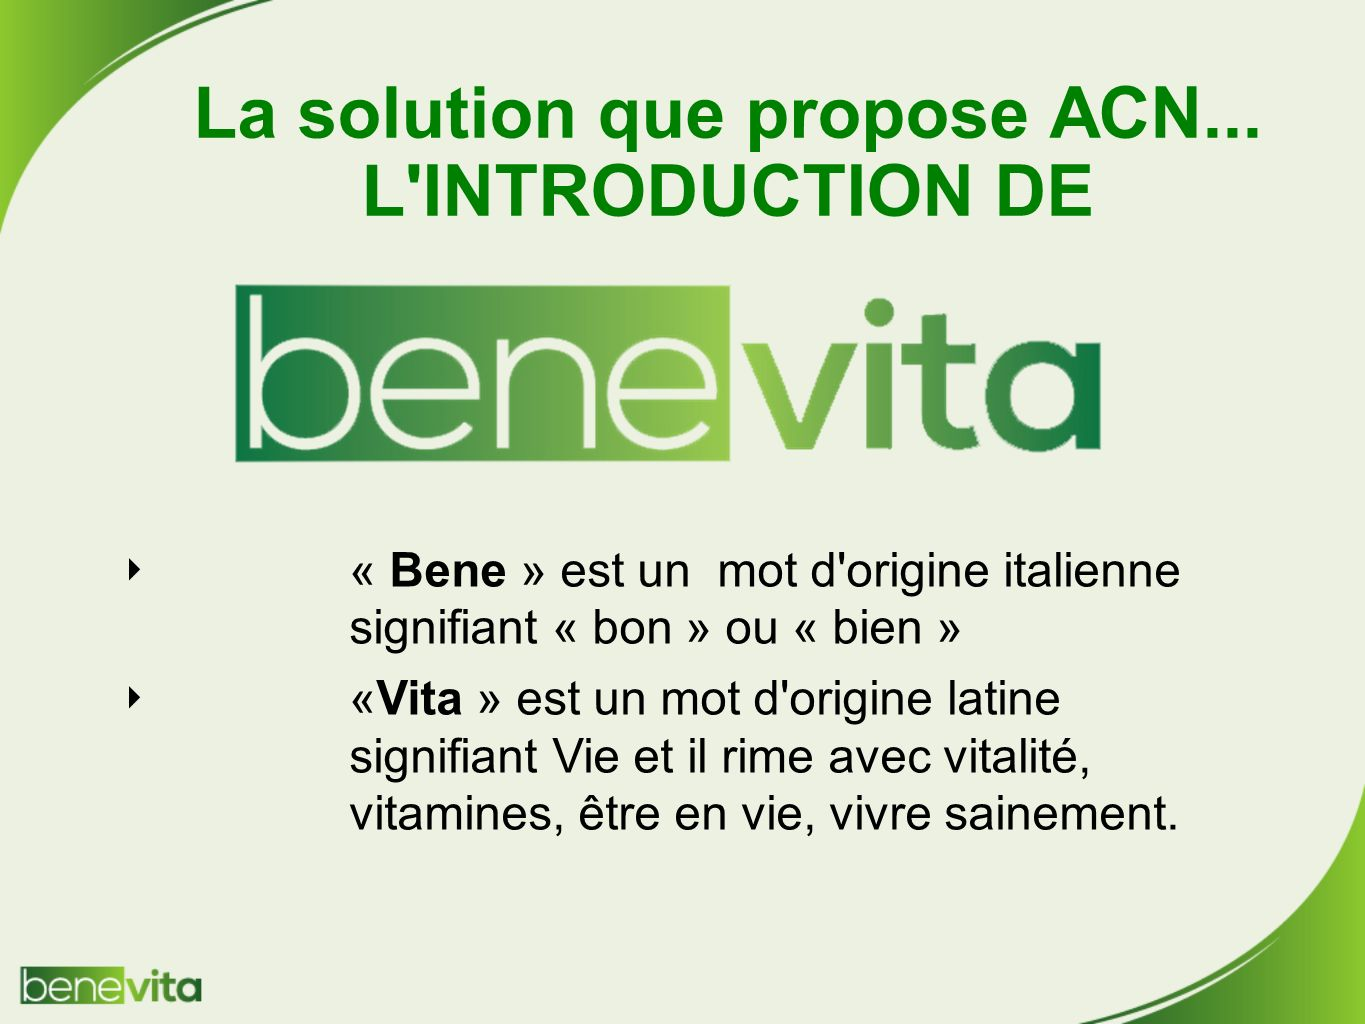 La solution que propose ACN... L INTRODUCTION DE